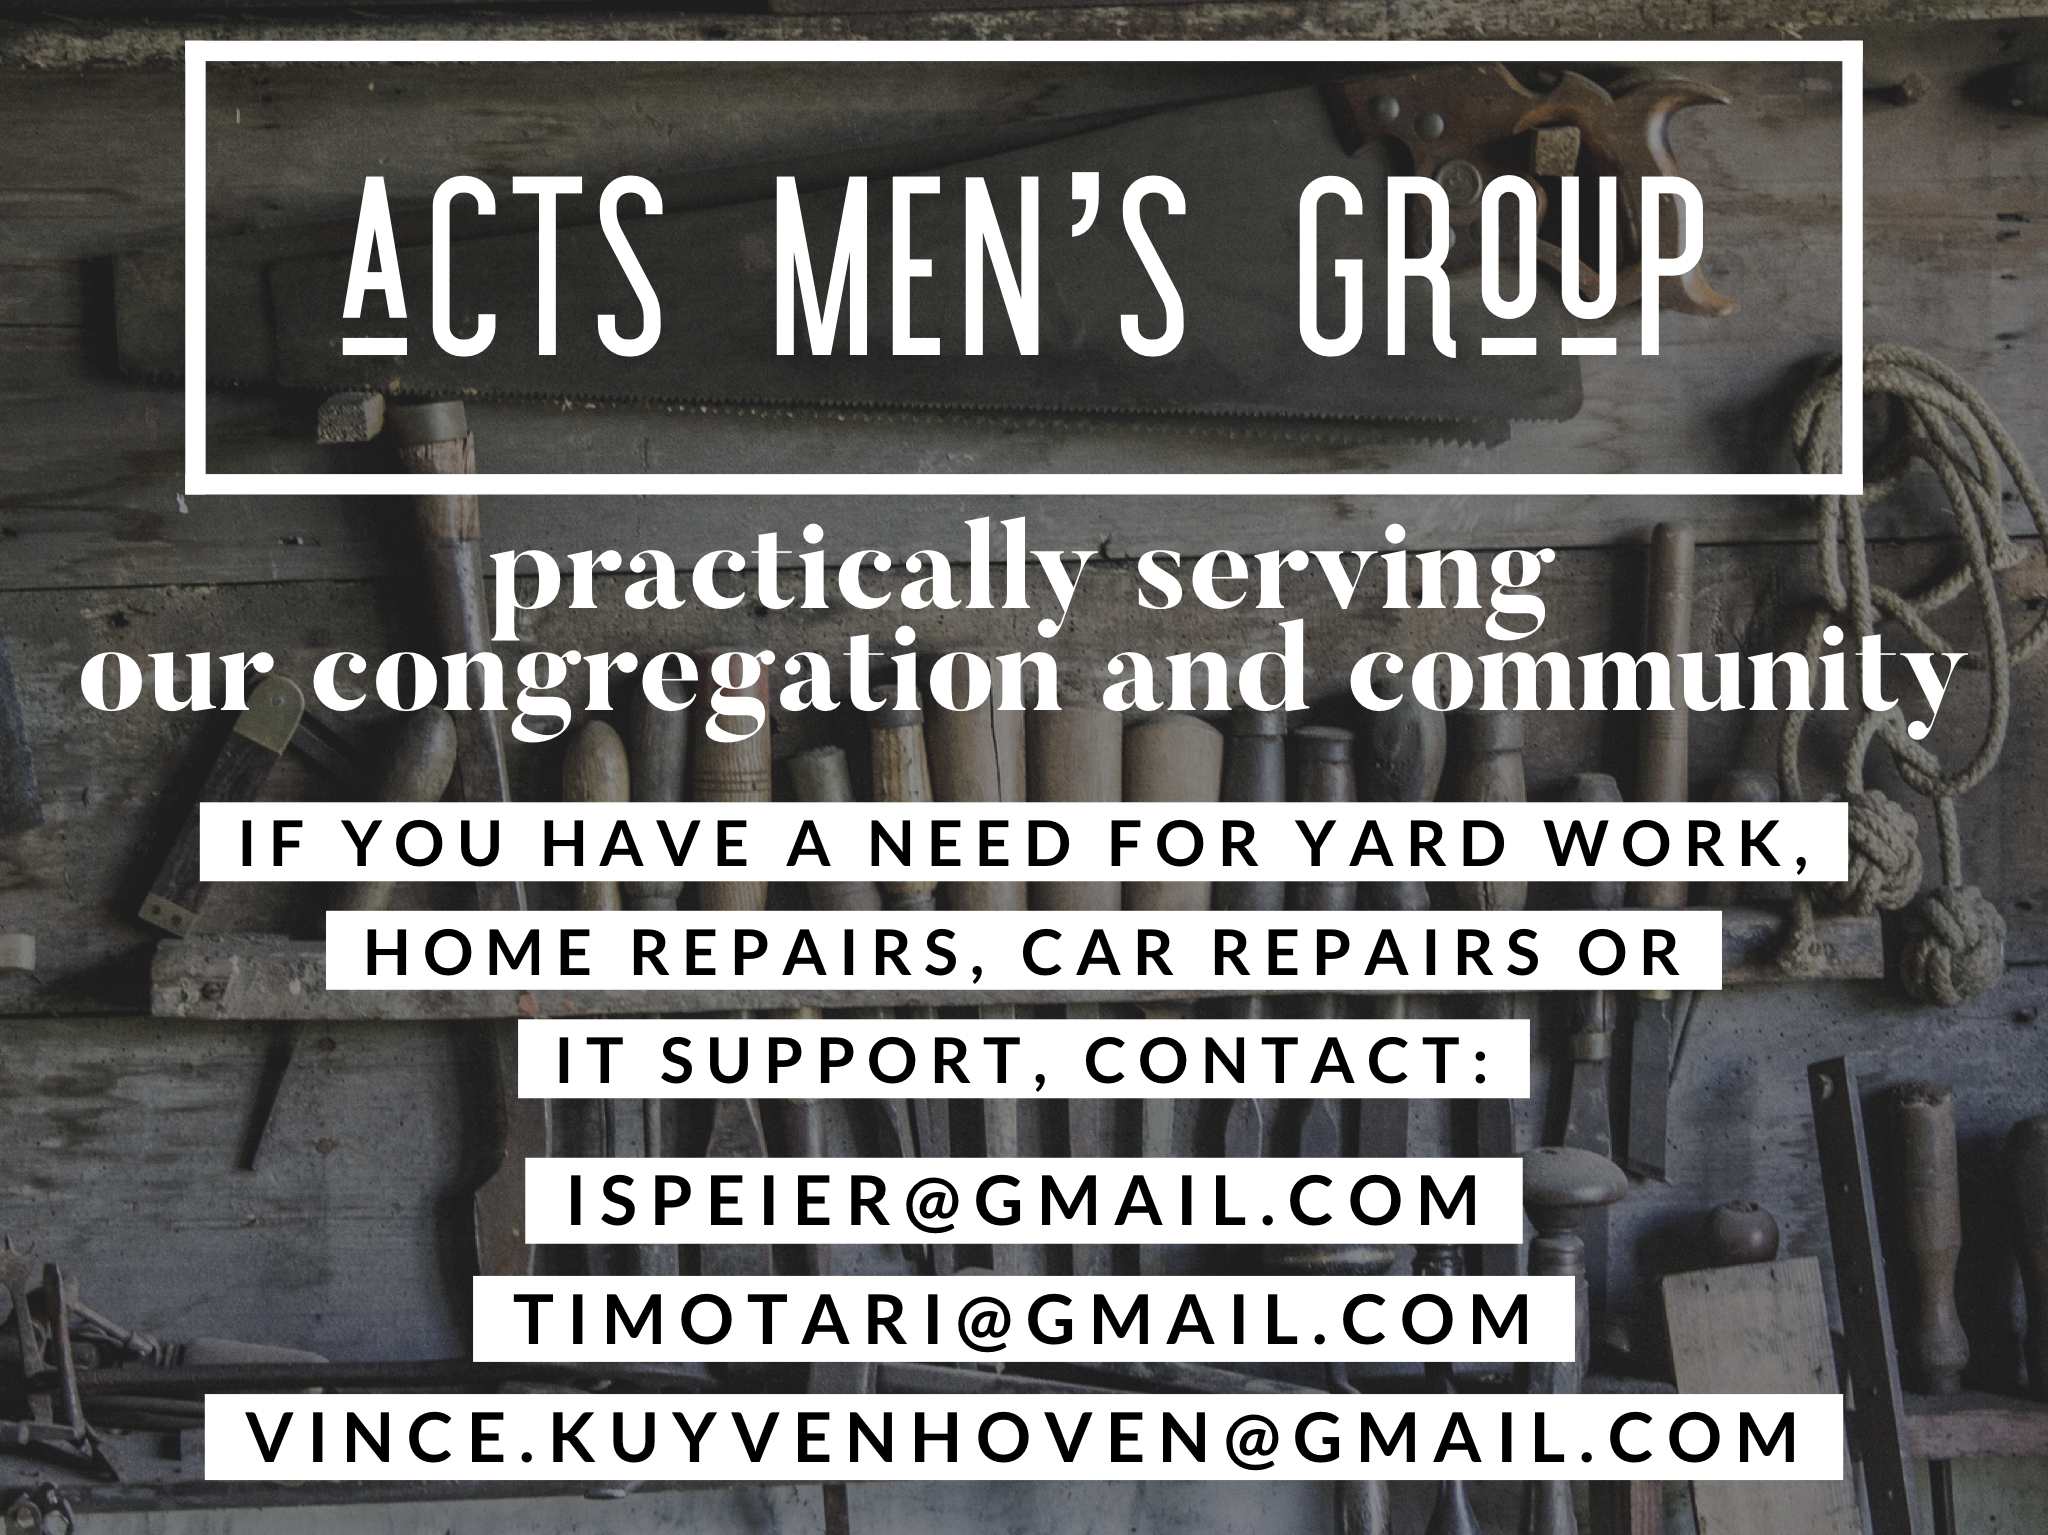 ACTS Men's Service Group - If you, or someone you know, has a need for yard work, home repairs, vehicle repairs or IT support, contact Ingo, Timmo or Vince to get connected with the ACTS Men's Service Group:INGO: ispeir@gmail.comTIMMO: timotari@gmail.comVINCE: vince.kuyvenhoven@gmail.com